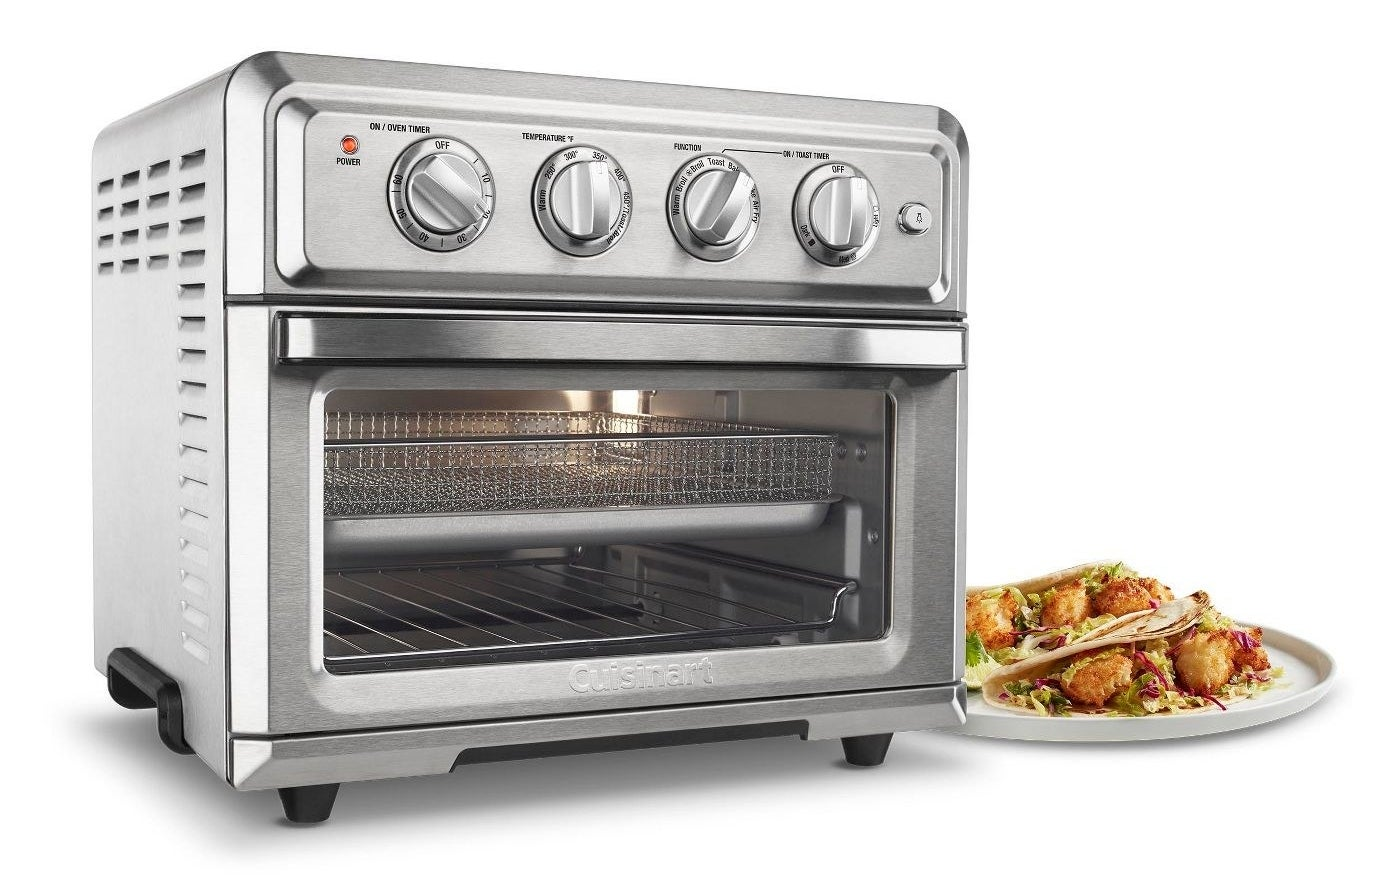 The toaster oven and air fryer